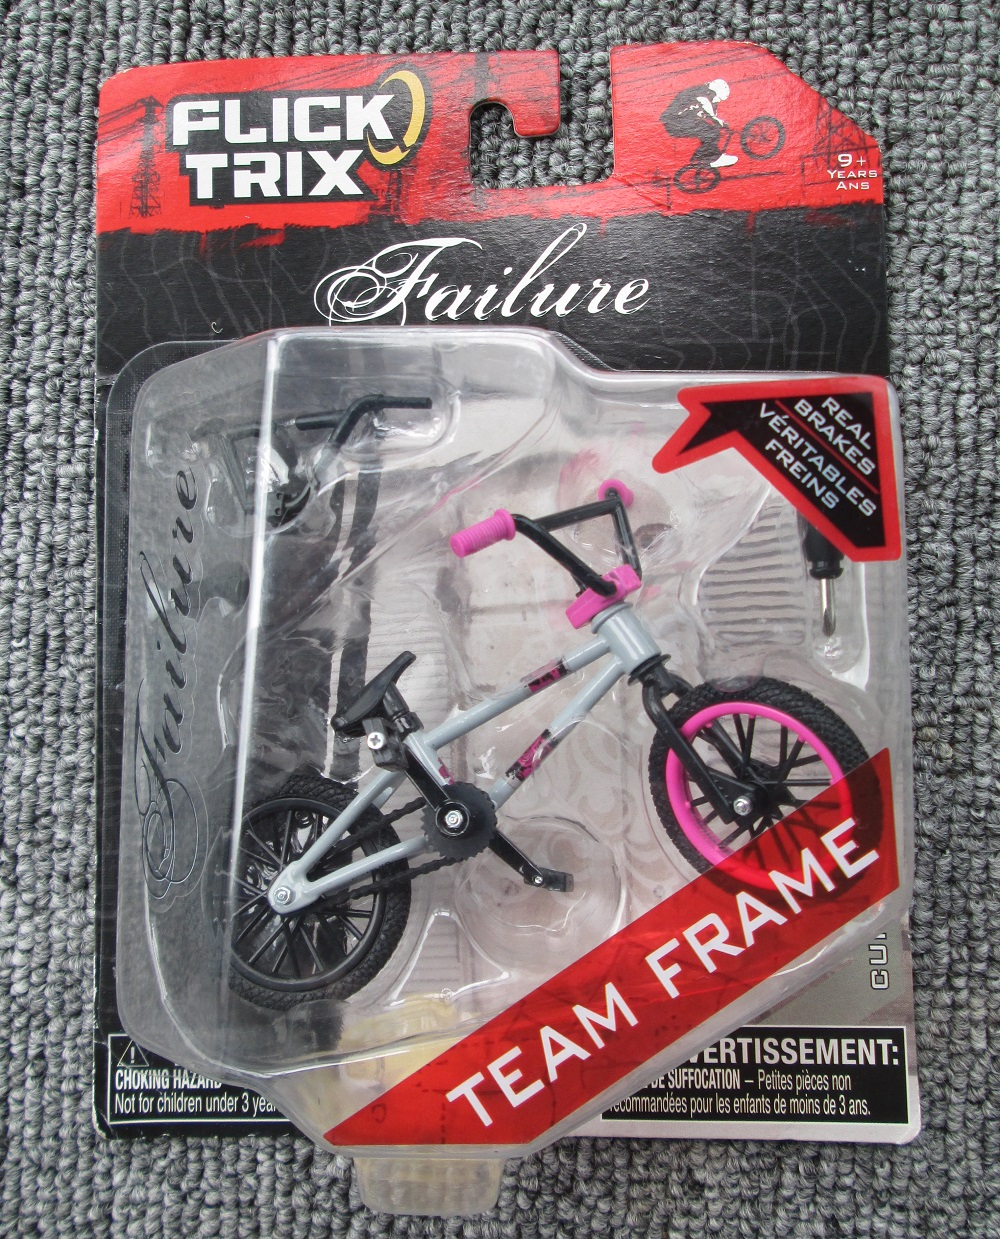 Amazing Only 7 USD Gray&Pink Finger Bmx toys bike with Diecast Nickel Alloy Stents Gift for chldren kids toys